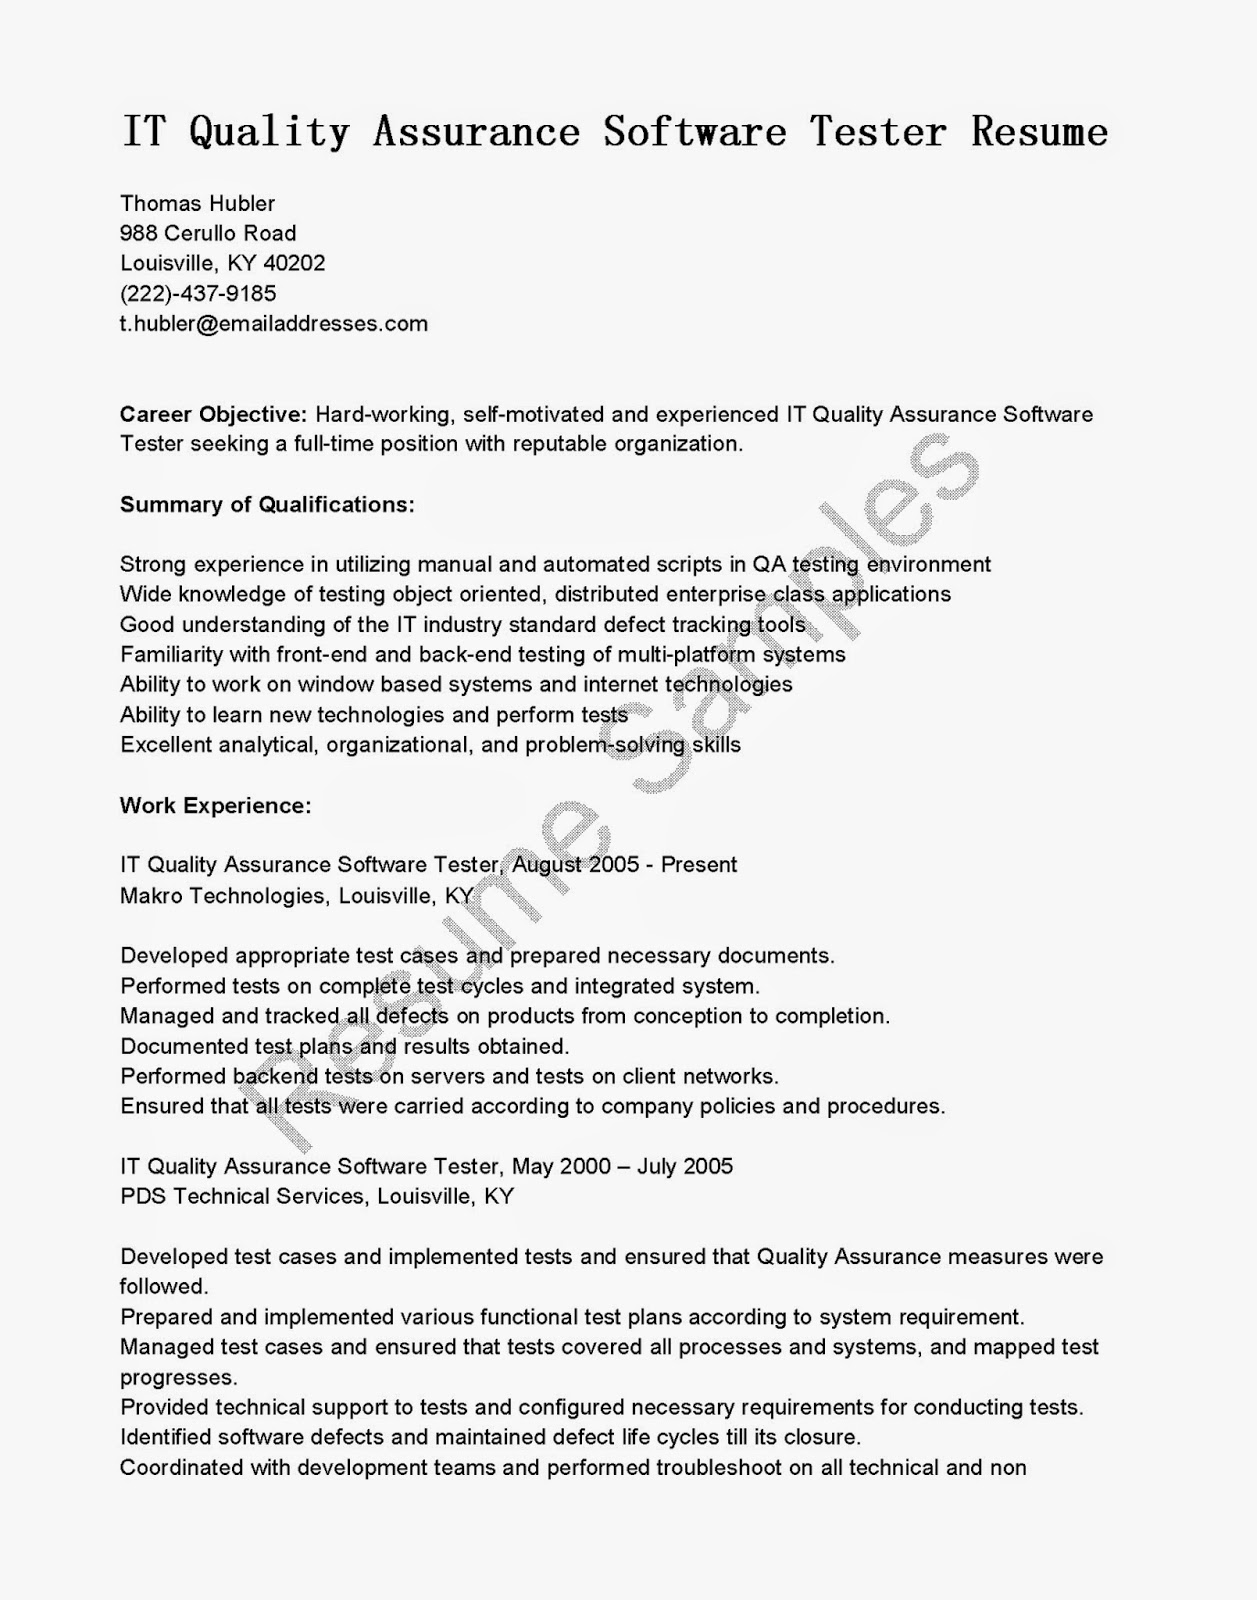 Buy Persuasive Essay Paper - HealthcareJob.nl - Vacatures in Dad ...